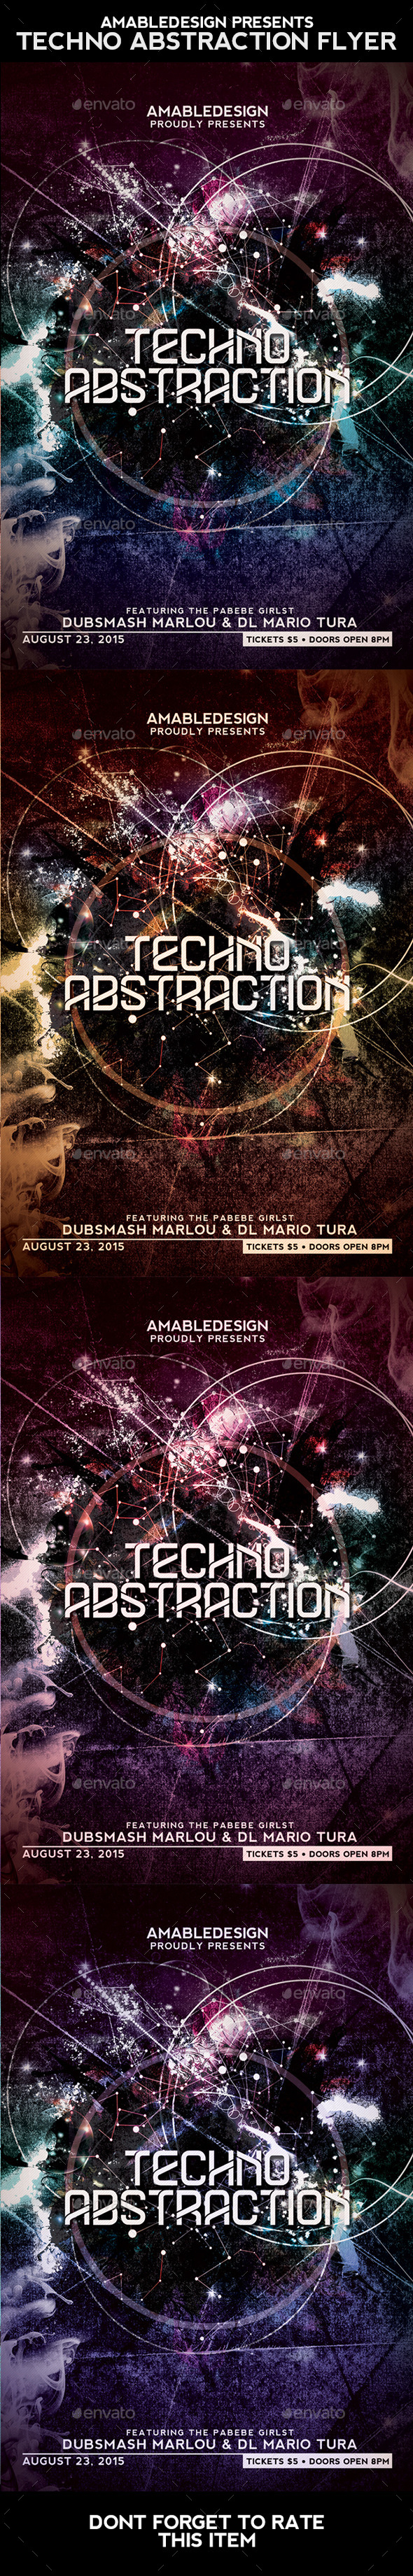 Techno Abstraction Flyer - Clubs & Parties Events